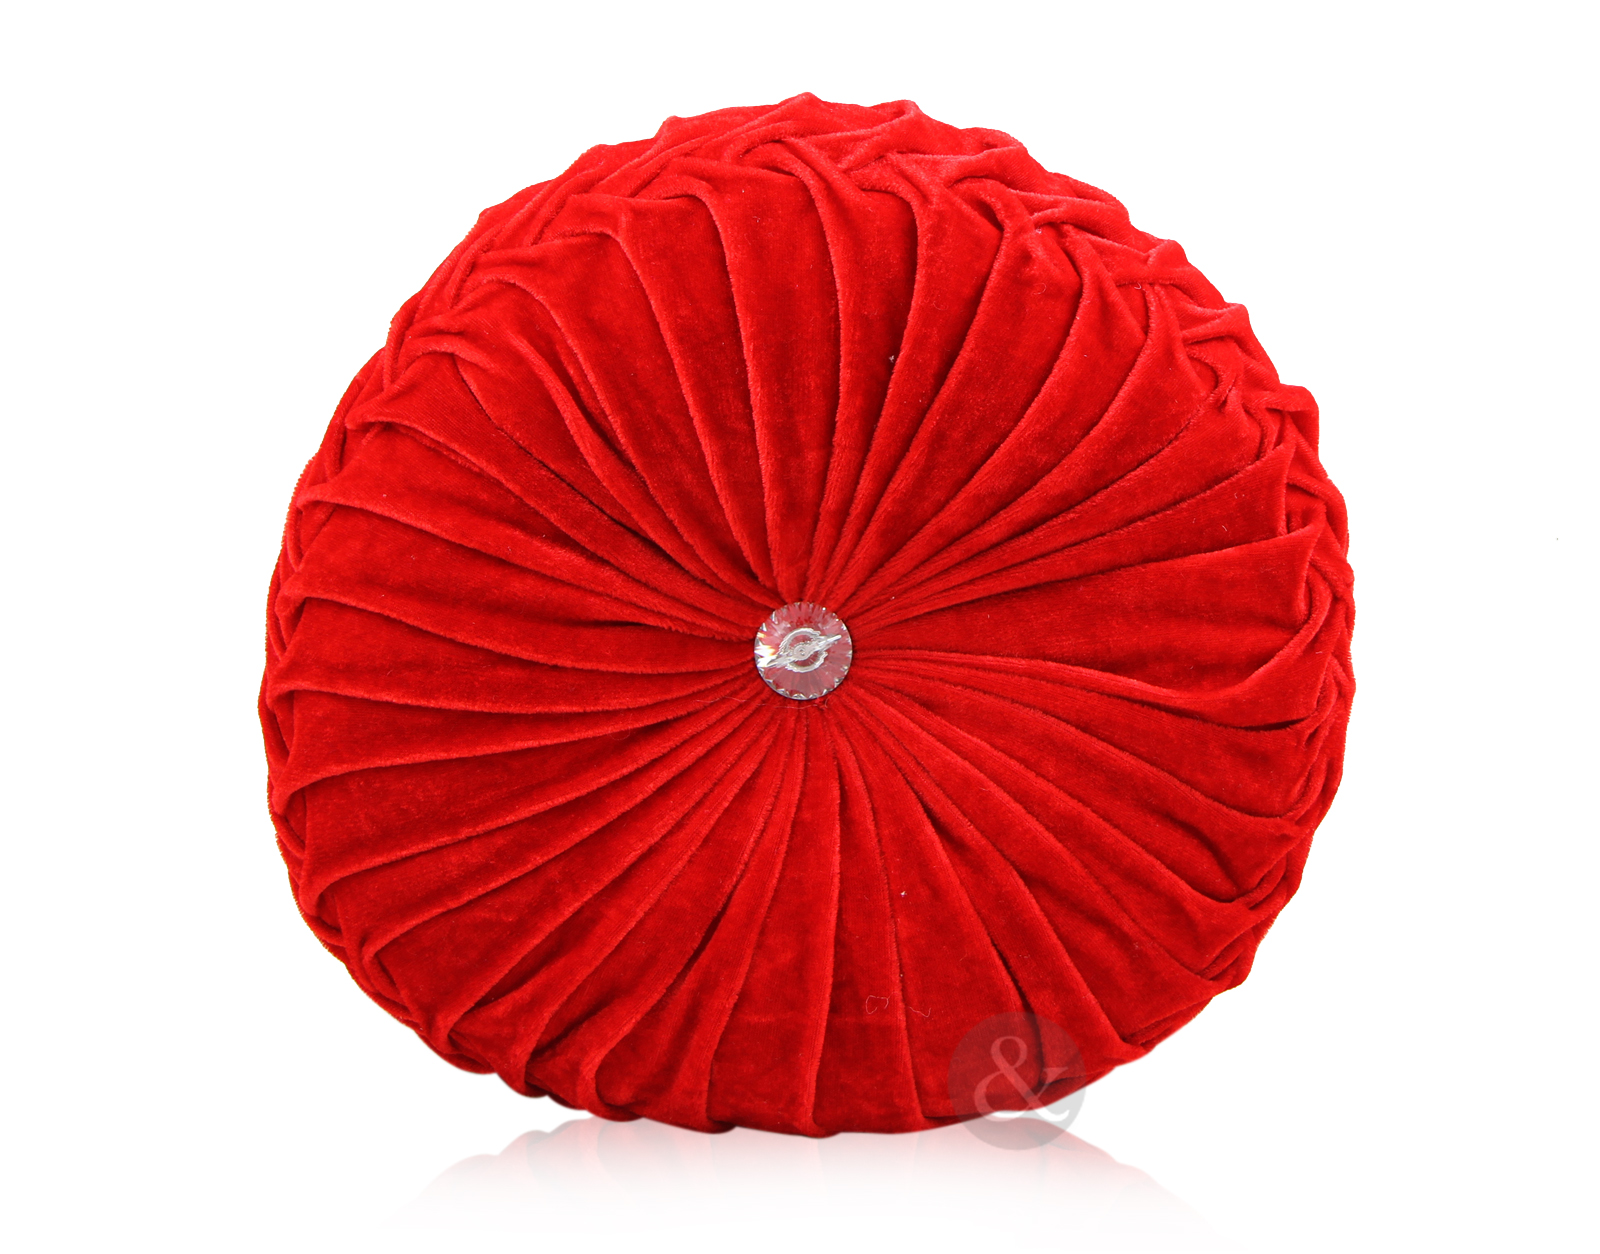 Round Red Decorative Pillows : Round Velvet Cushions Luxury Diamante Chic Filled Scatter Cushion eBay